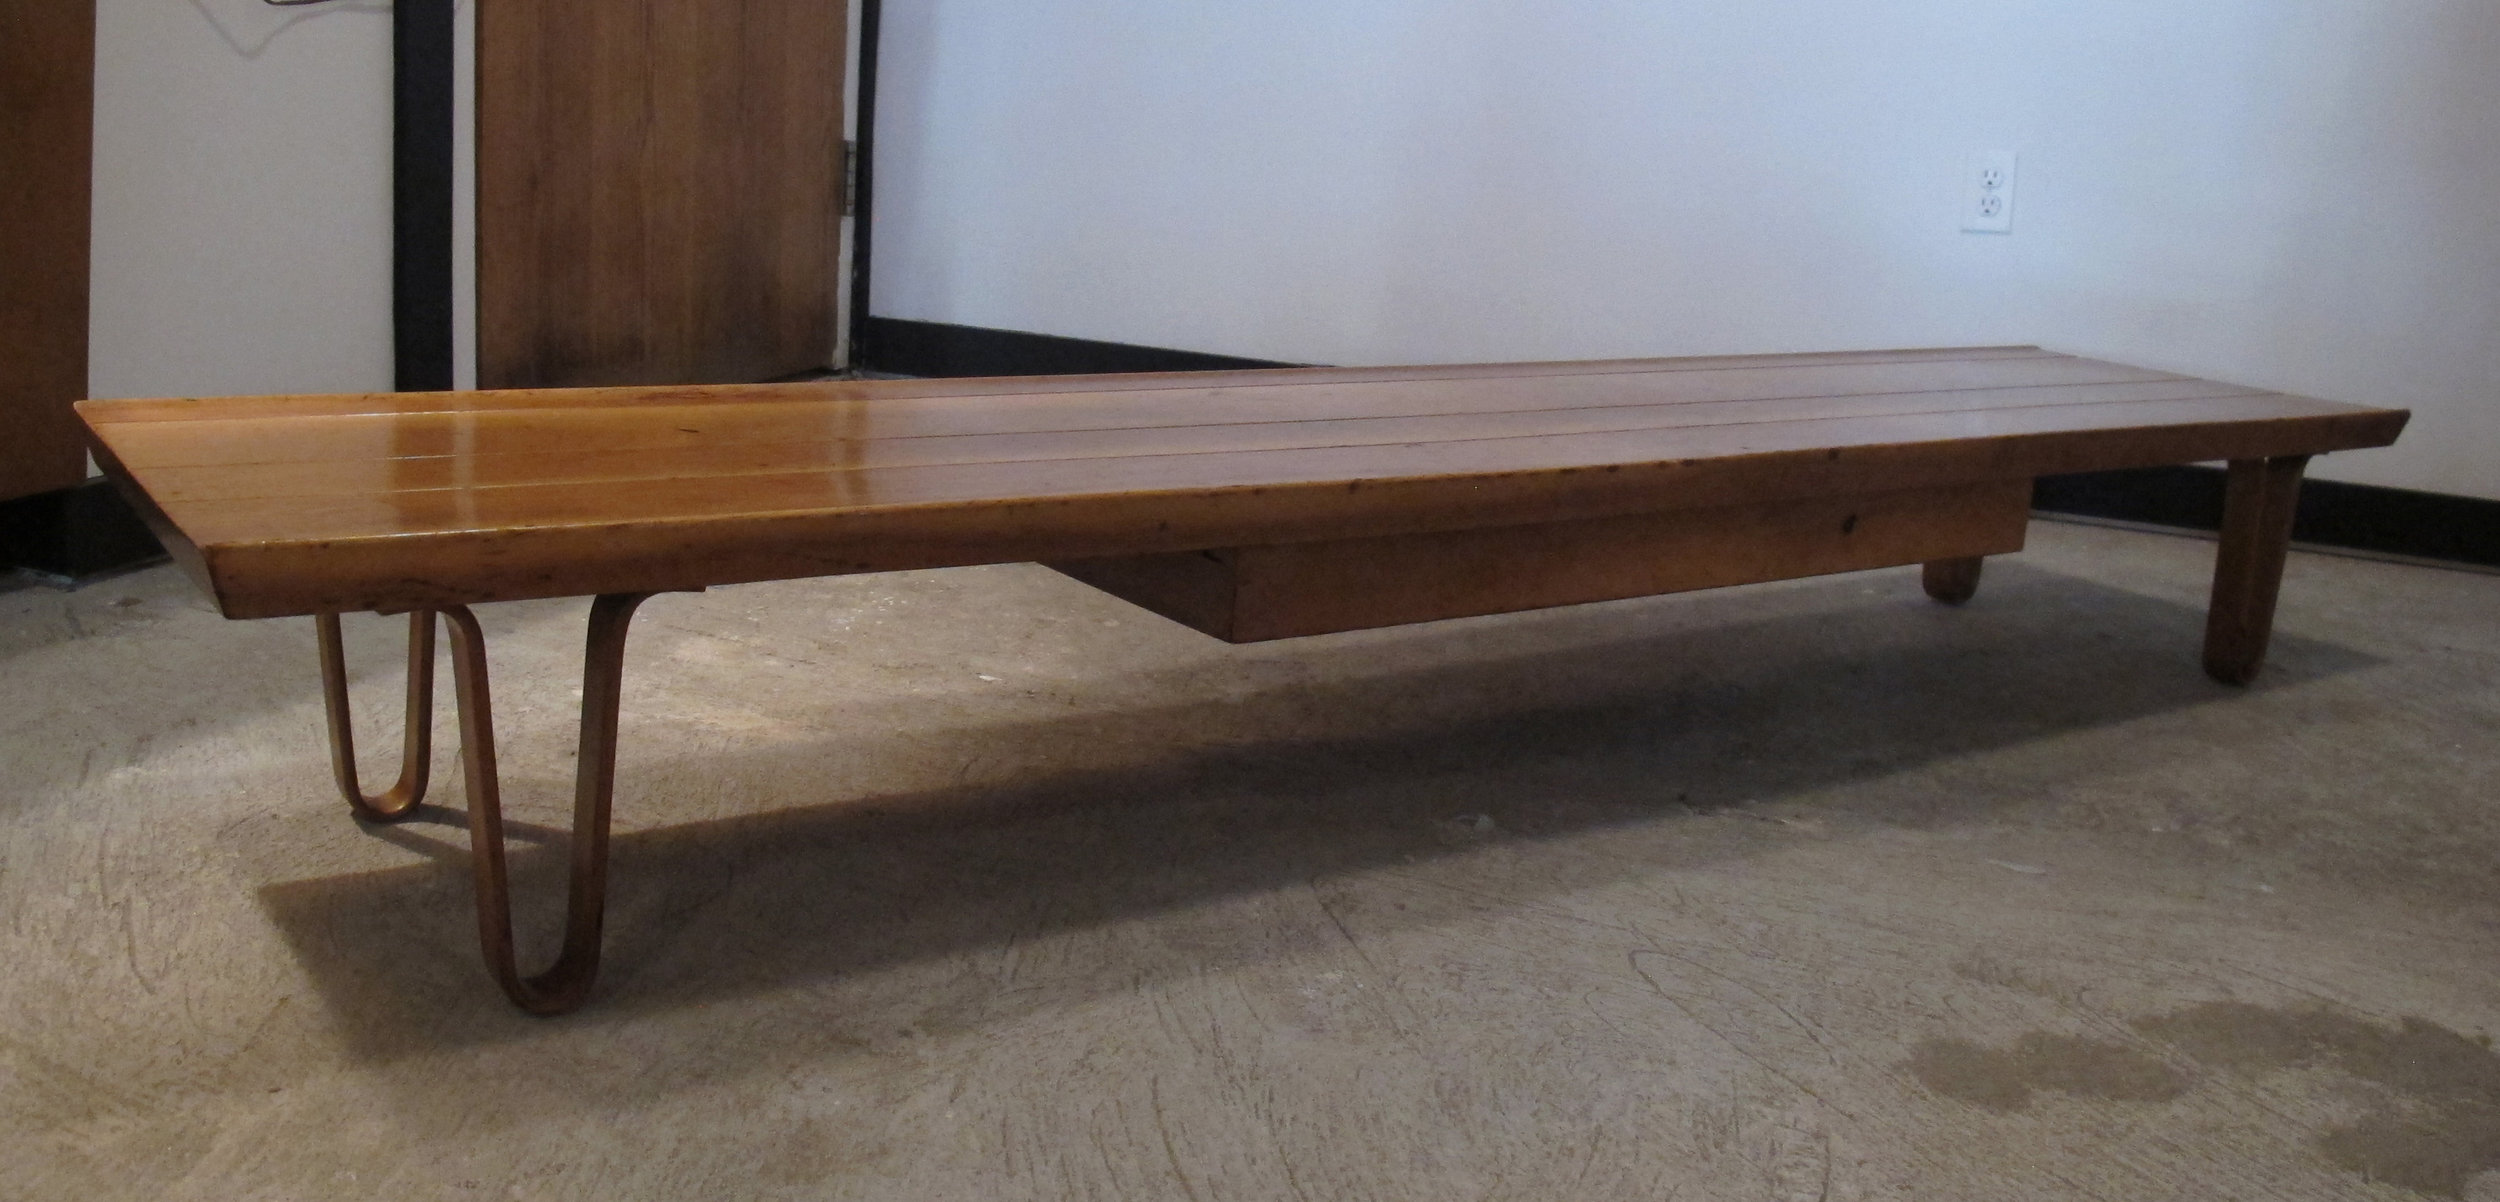 EDWARD WORMLEY LONG JOHN WALNUT COFFEE TABLE BY DUNBAR